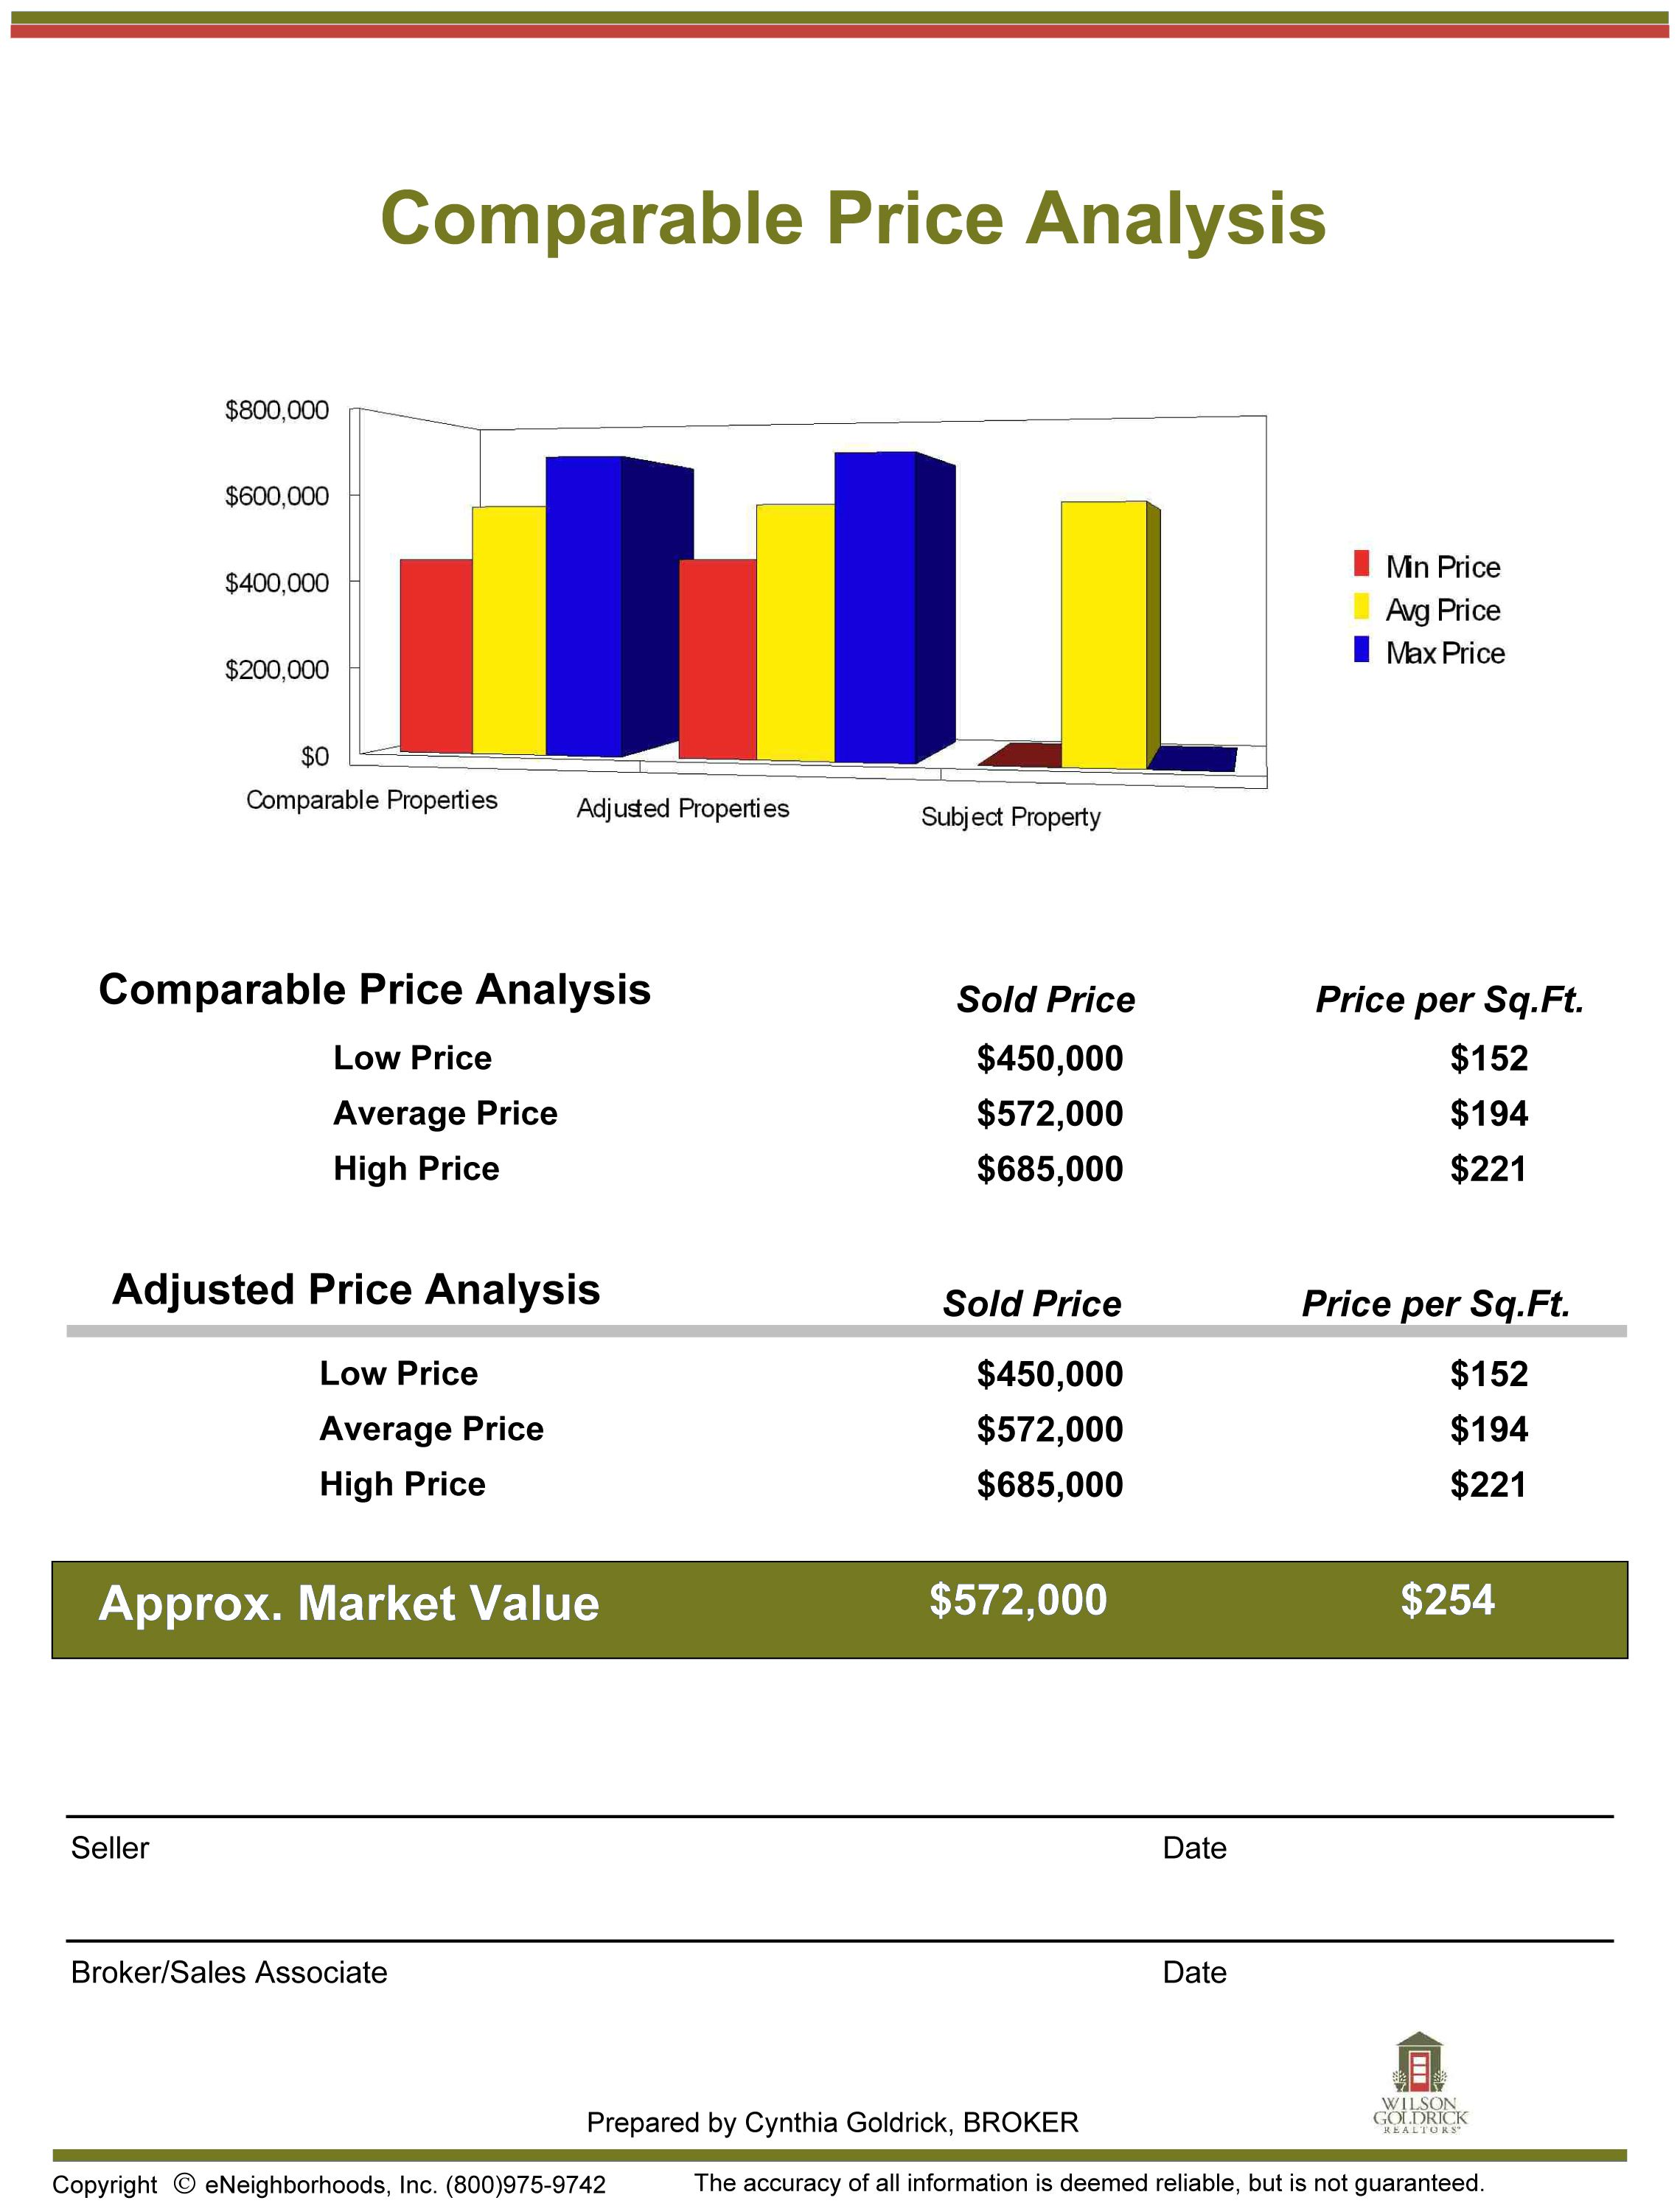 Prepare Comparative Market Analysis For Agents Using Wyldfyre